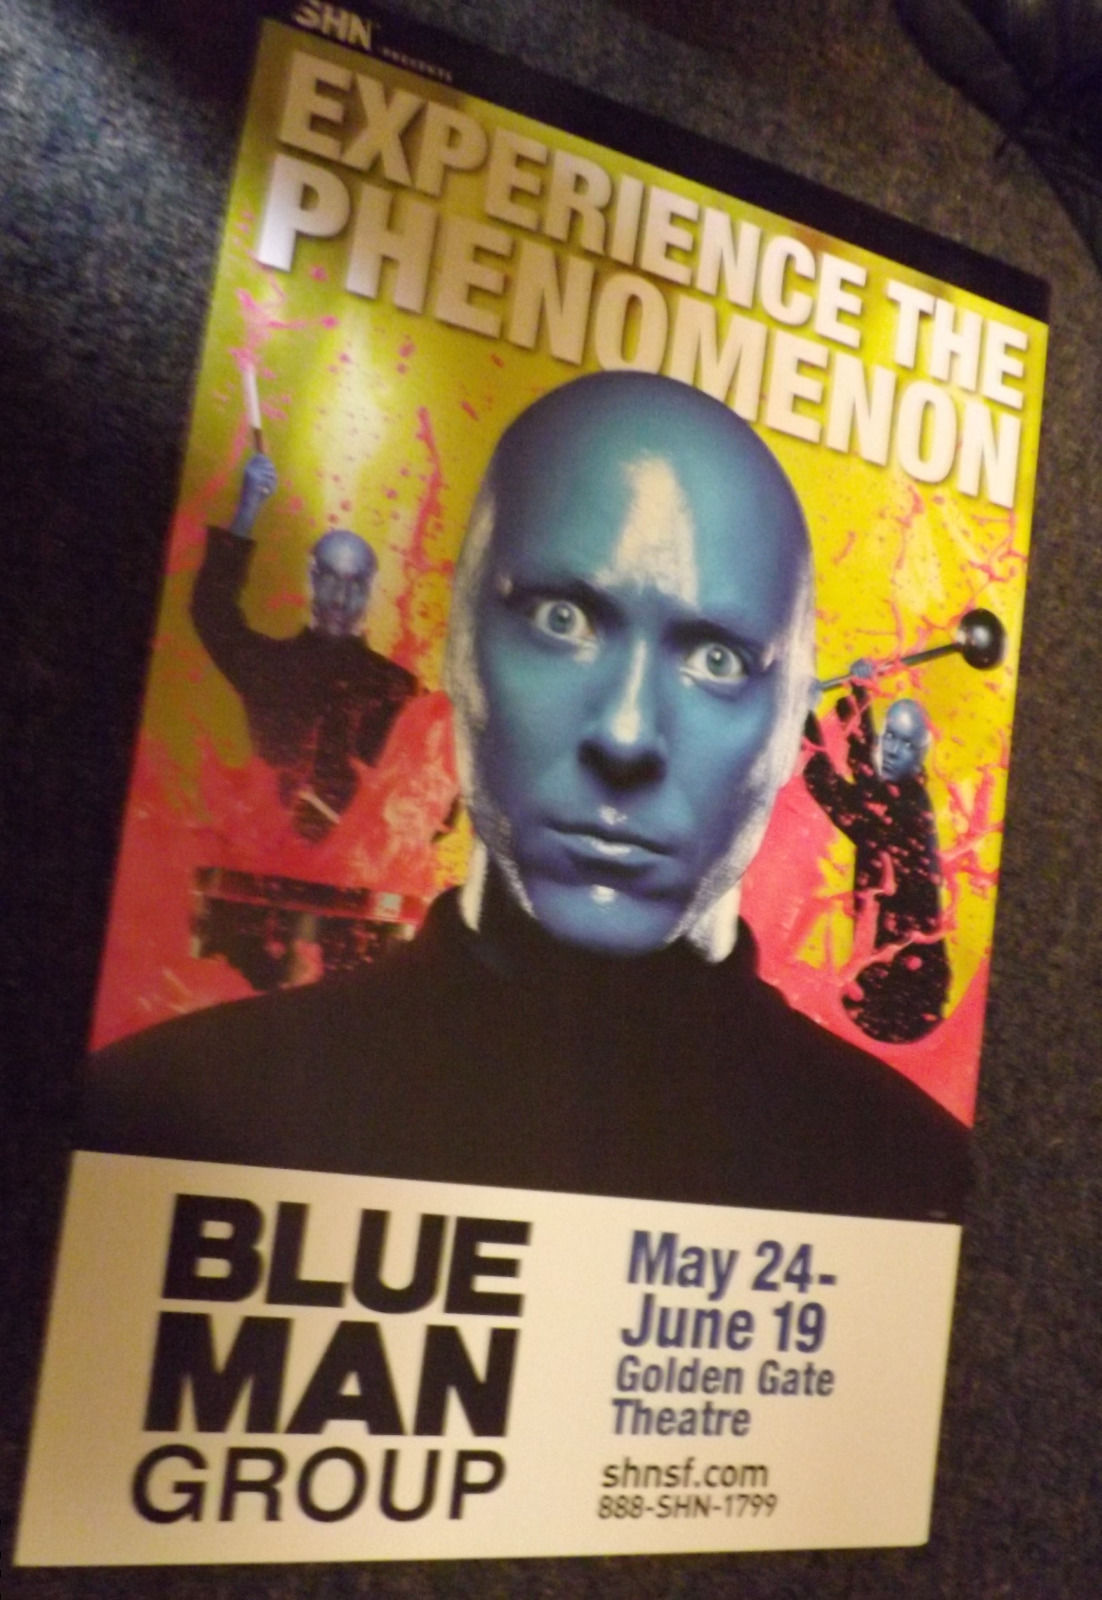 BLUE MAN GROUP POSTER - SF